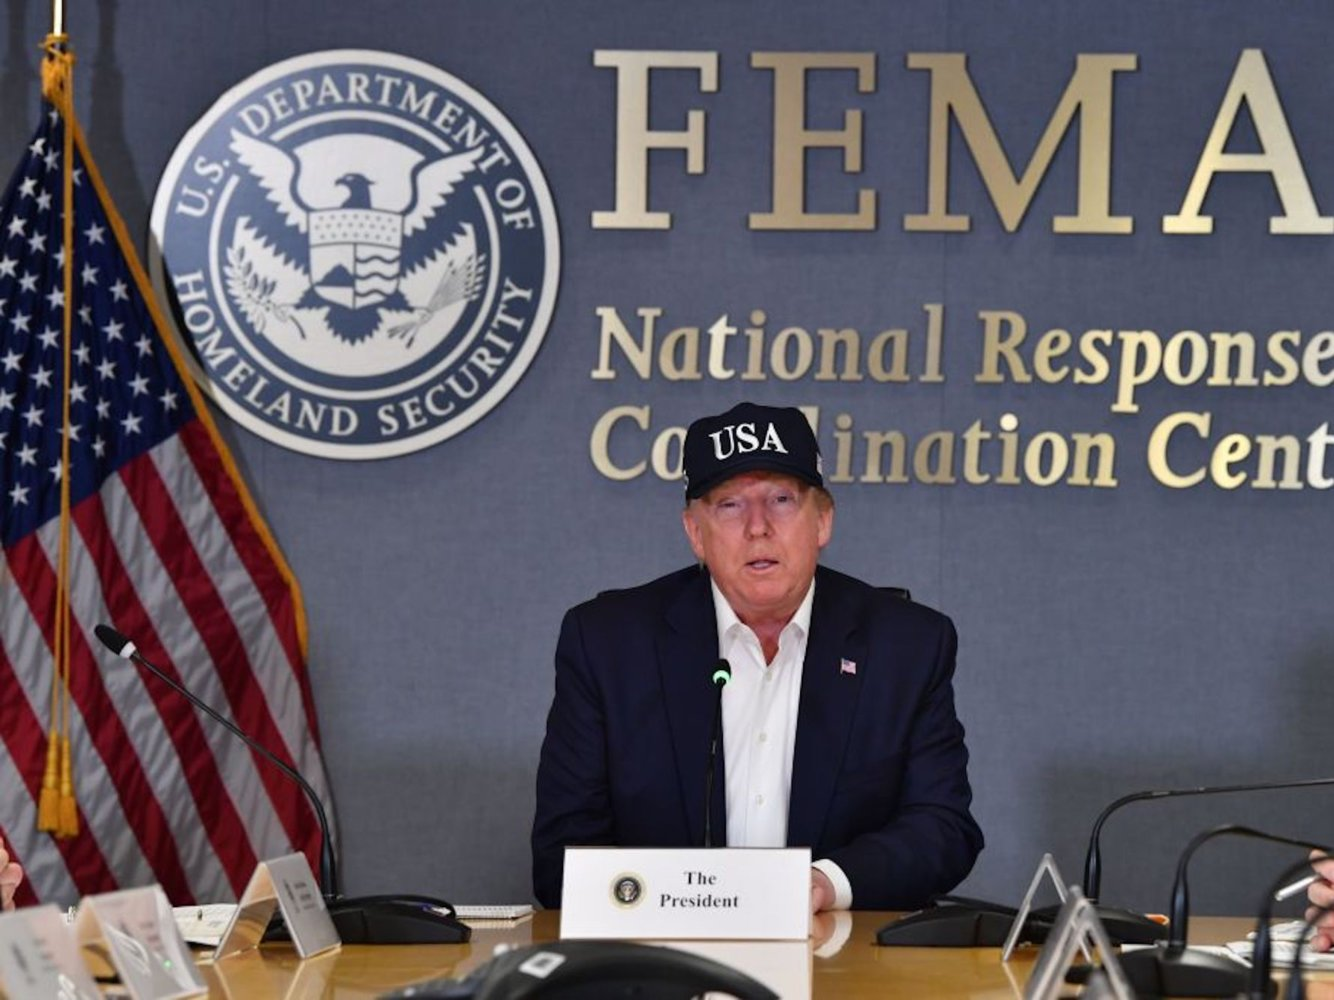 The National Weather Service corrected Trump after he falsely claimed that Hurricane Dorian was expected to hit Alabama